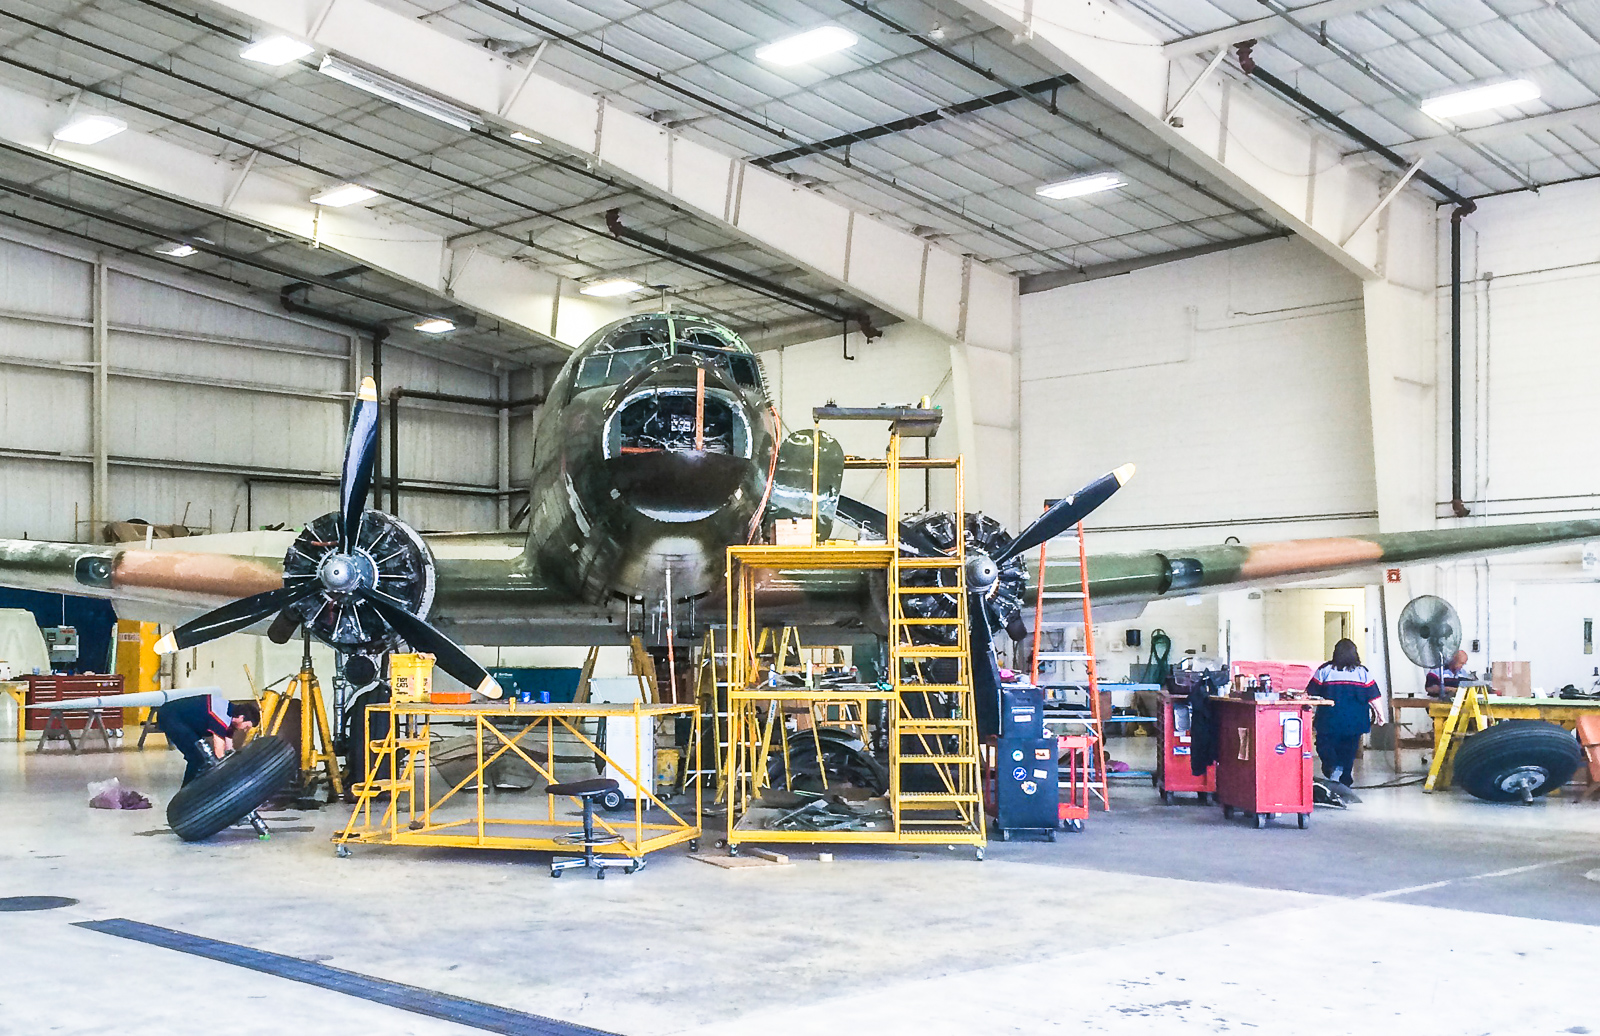 'That's All Brother' in one of Basler Turboprop Conversion's hangars undergoing restoration. (photo by Ryne Treatch)